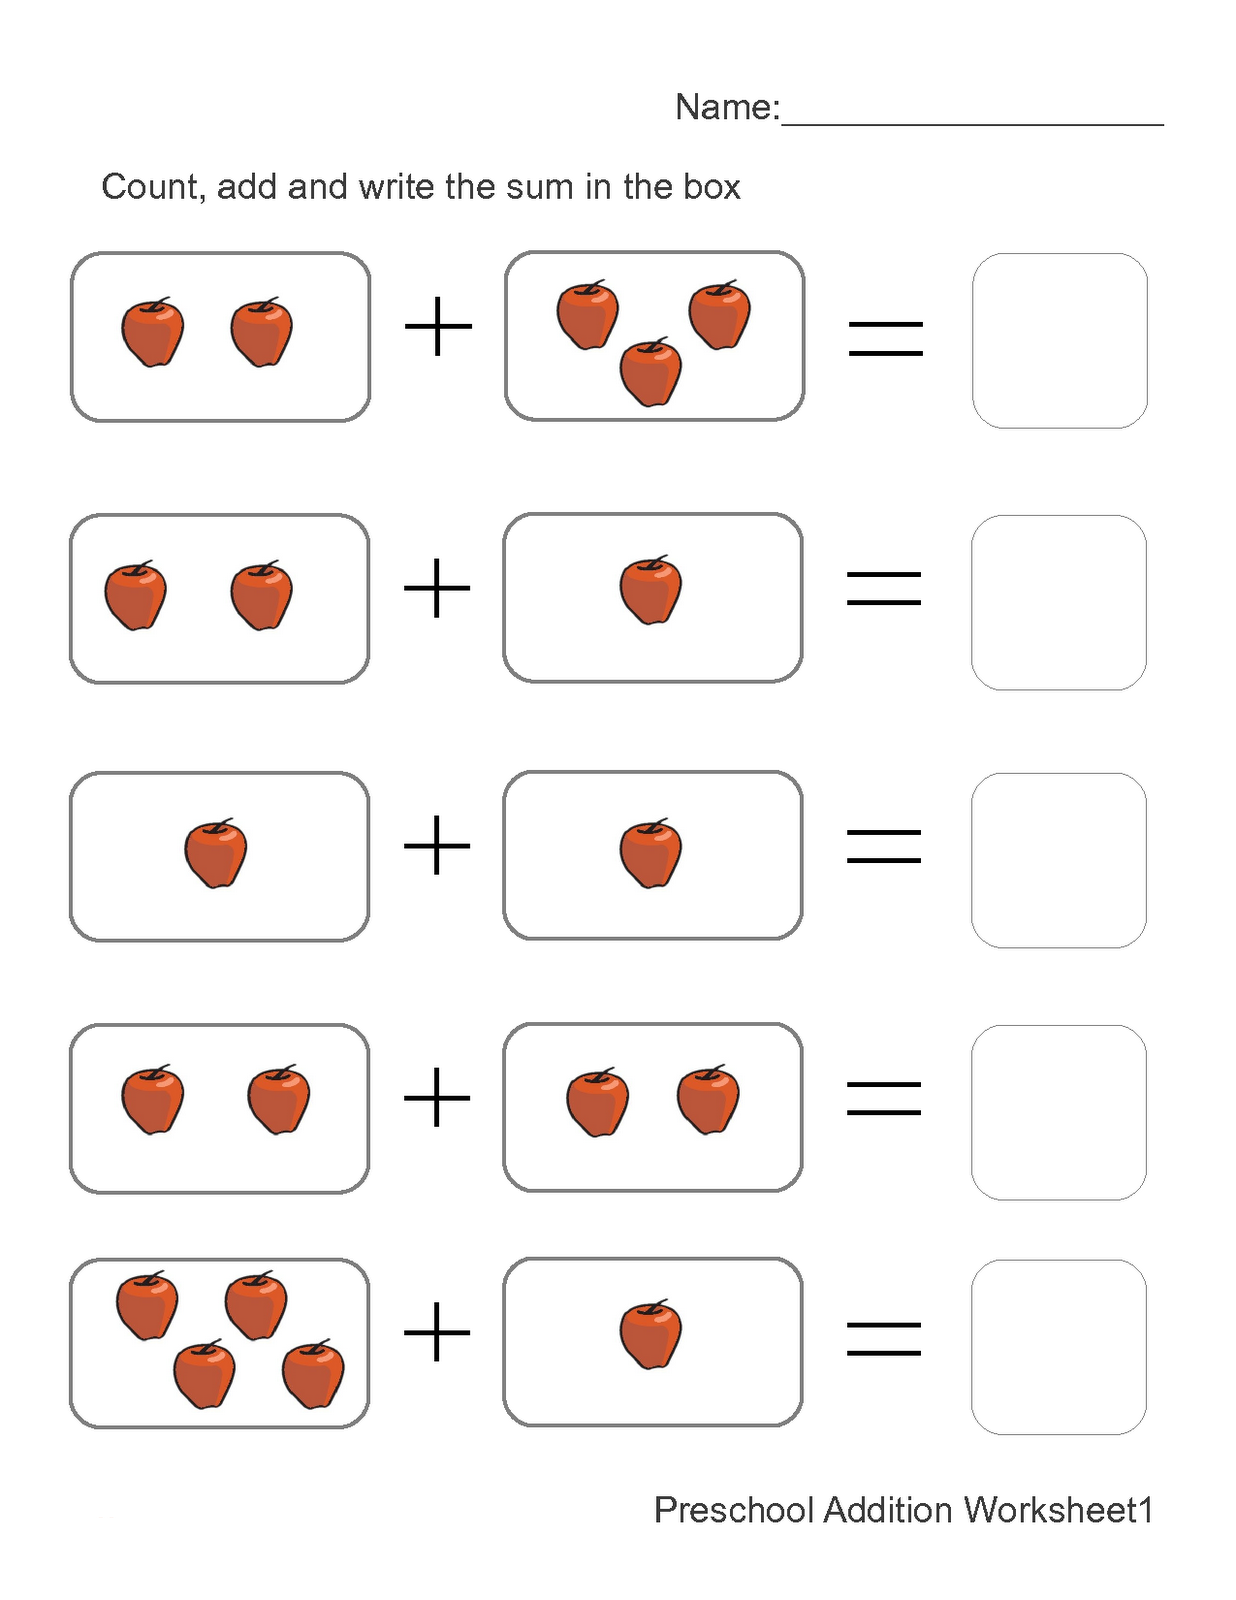 addition worksheets with pictures 1 | Kids math worksheets ...